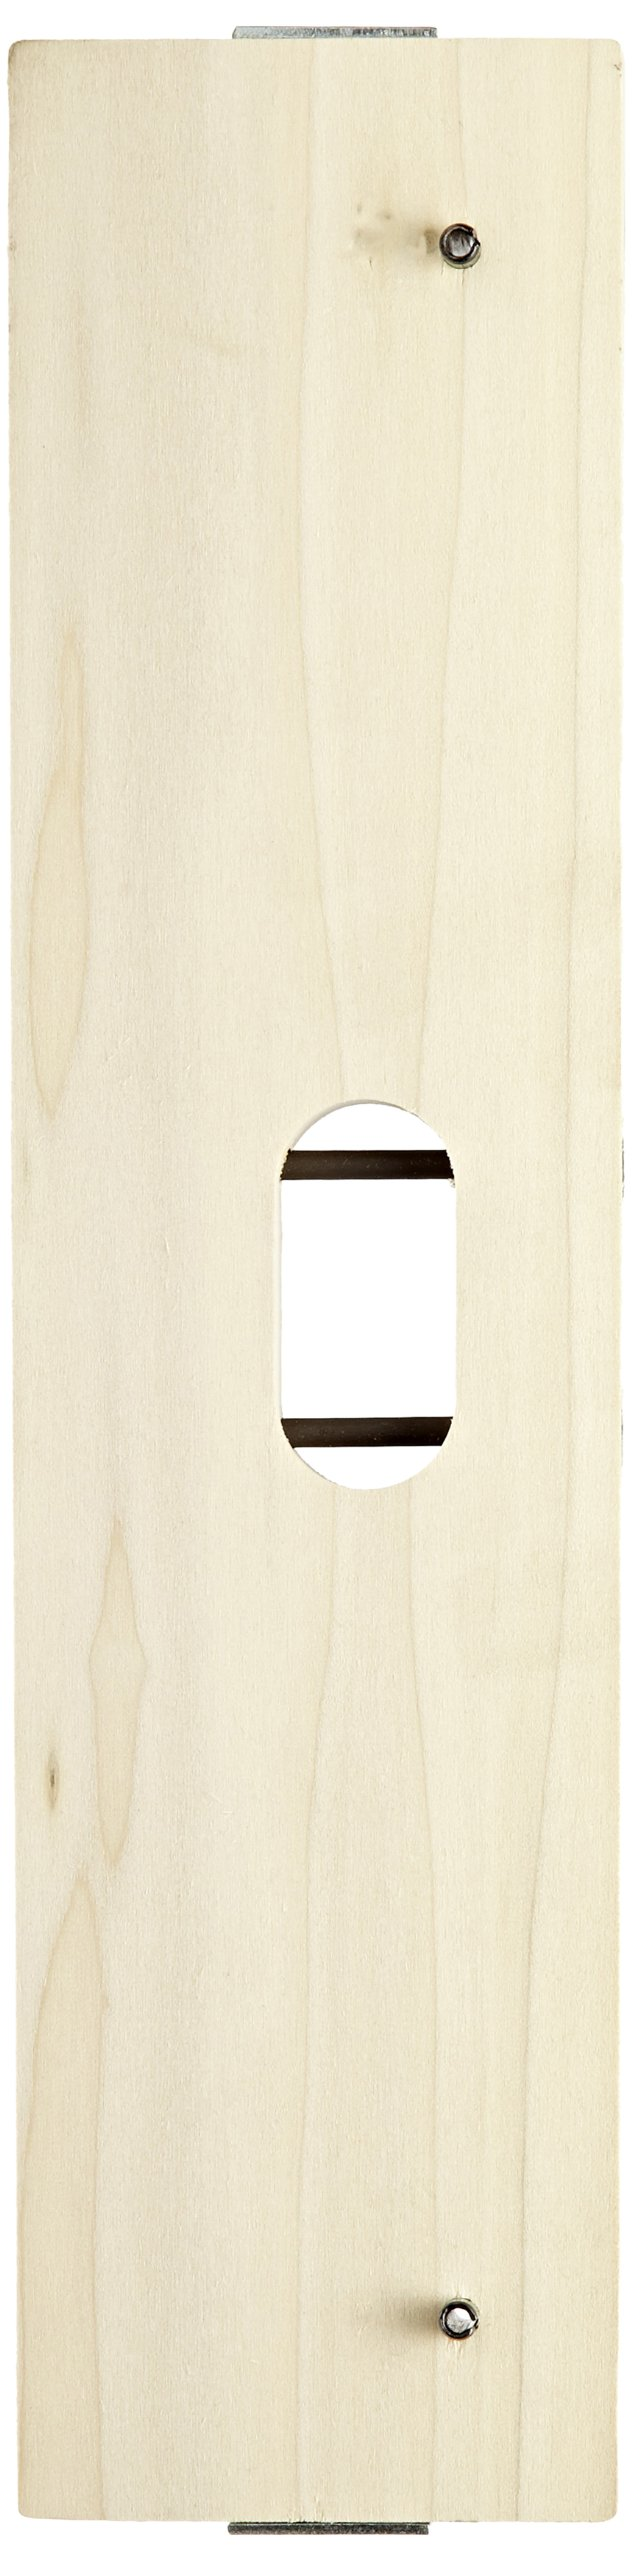 SOSS Wood Router Guide Template for #204 Invisible Hinges, 3/8'' Bit by SOSS